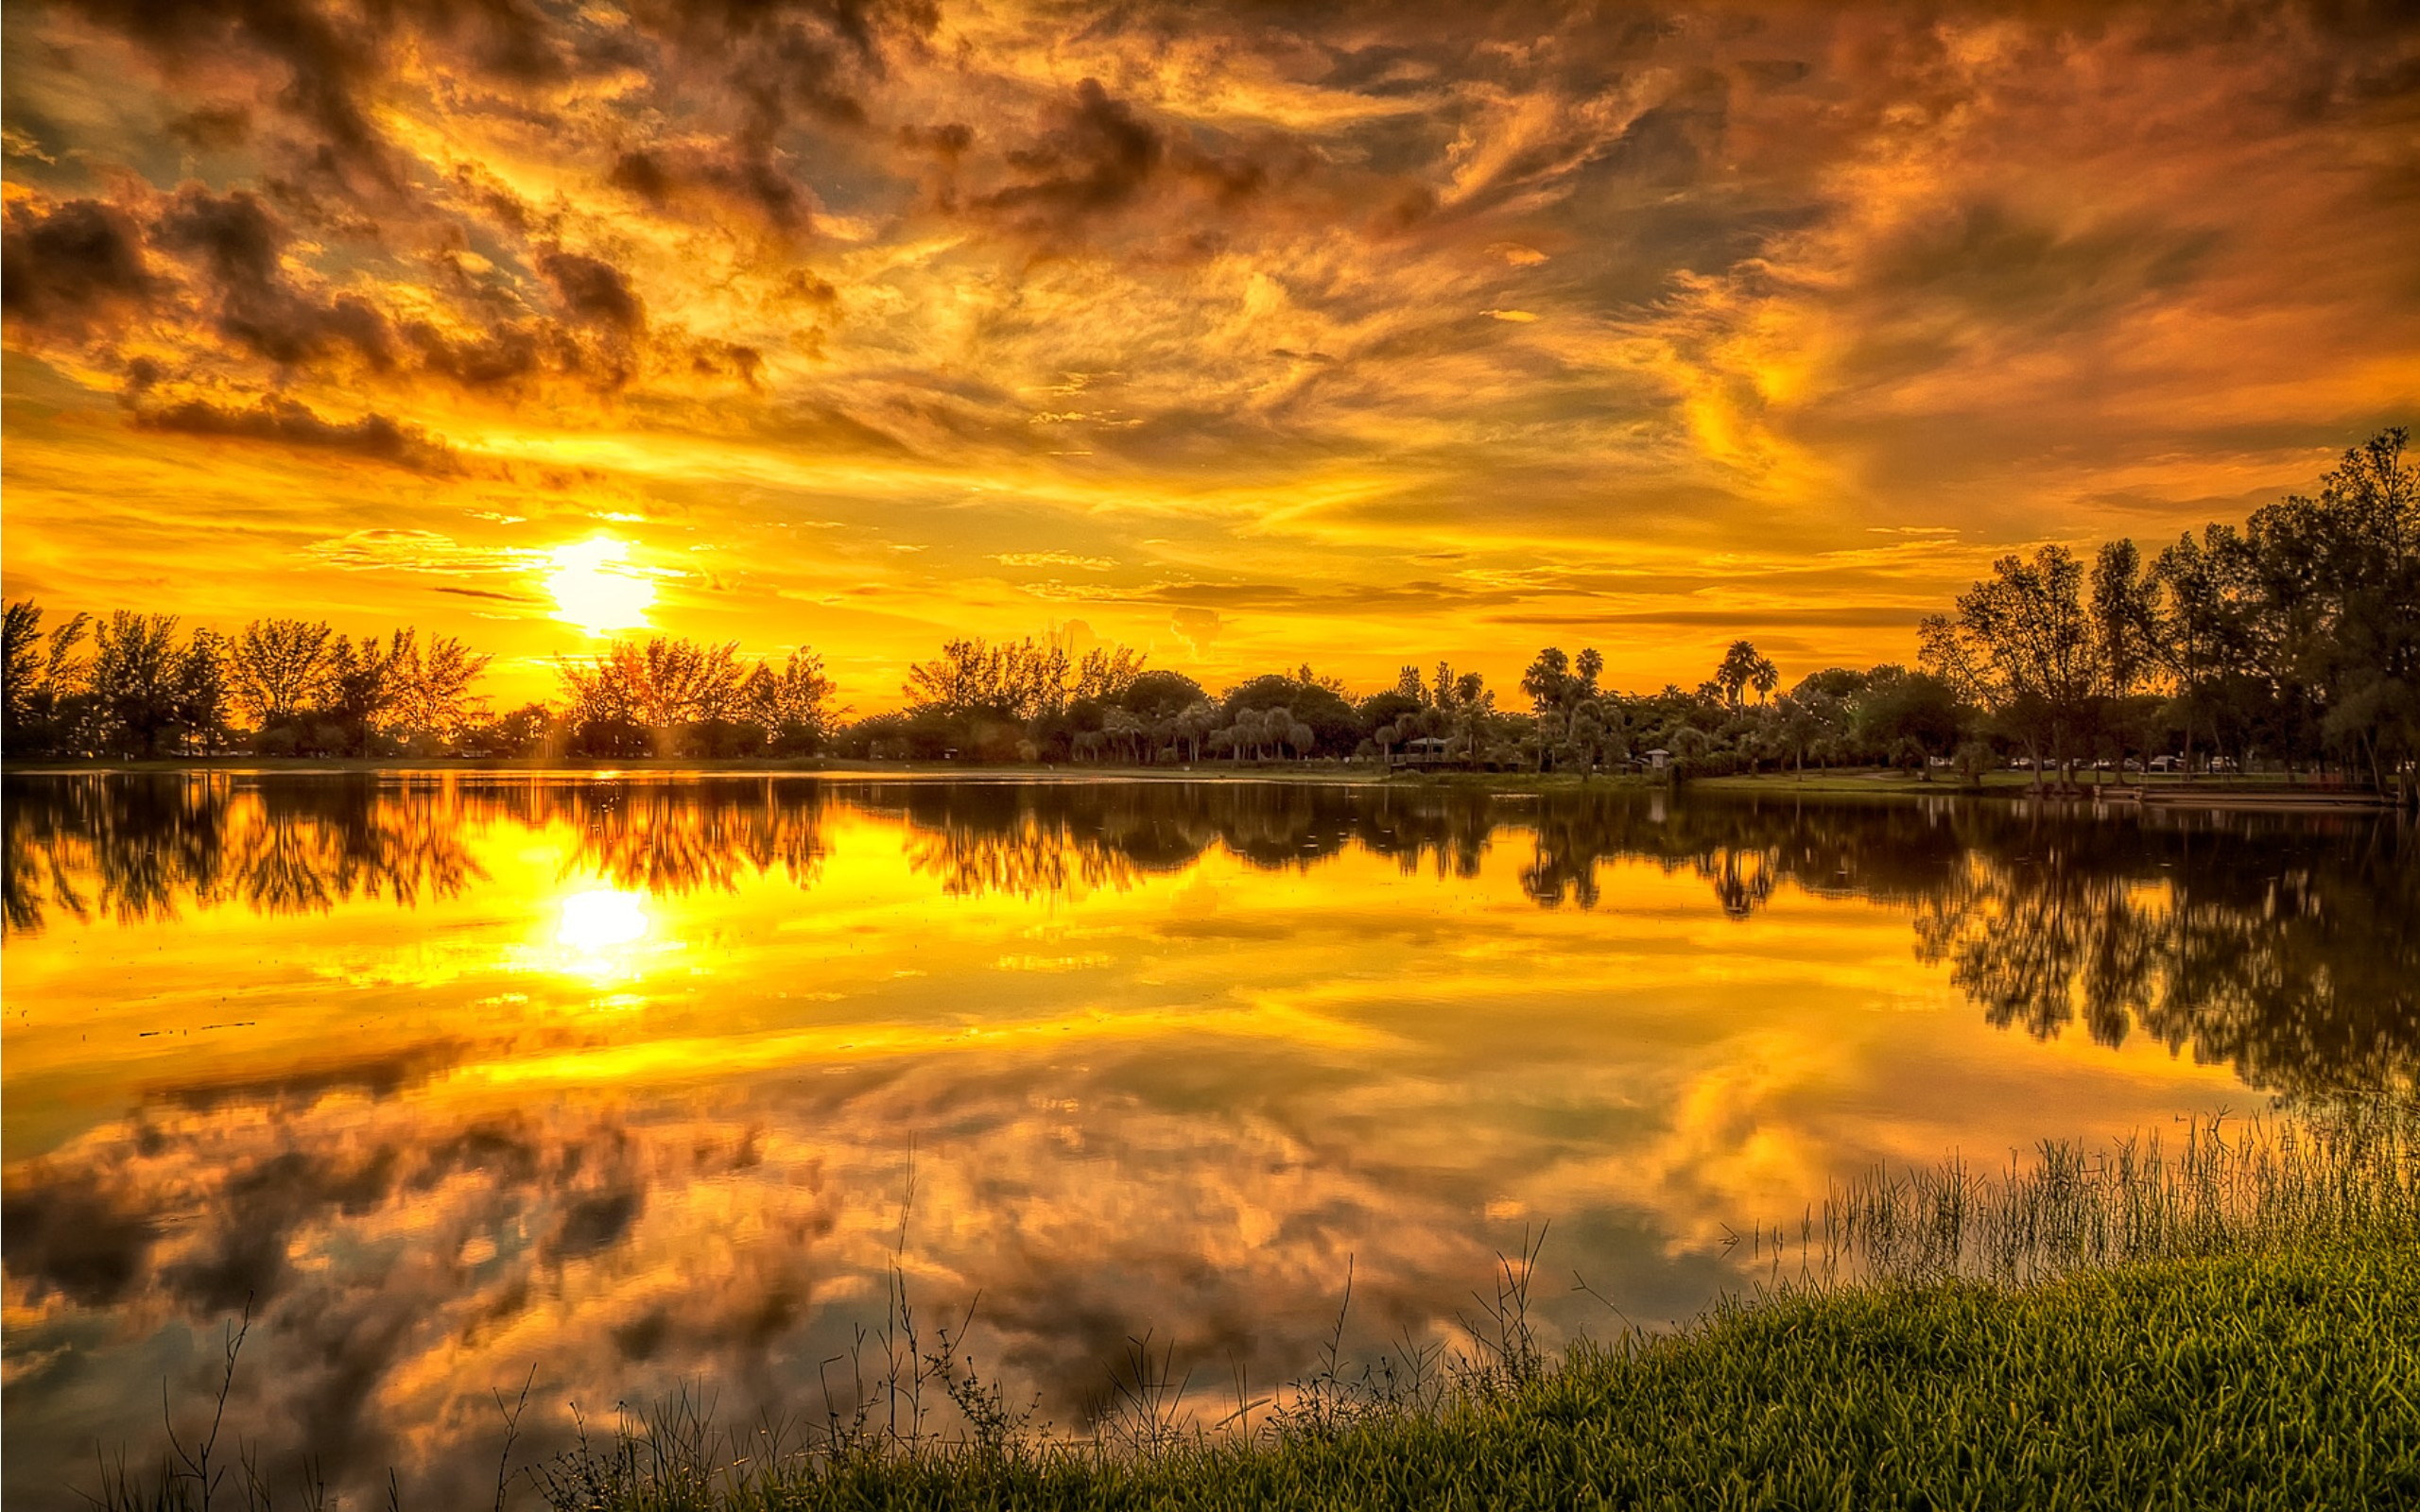 Landscapes hdr photography wallpaper 2560x1600 227307 for Landscape photos